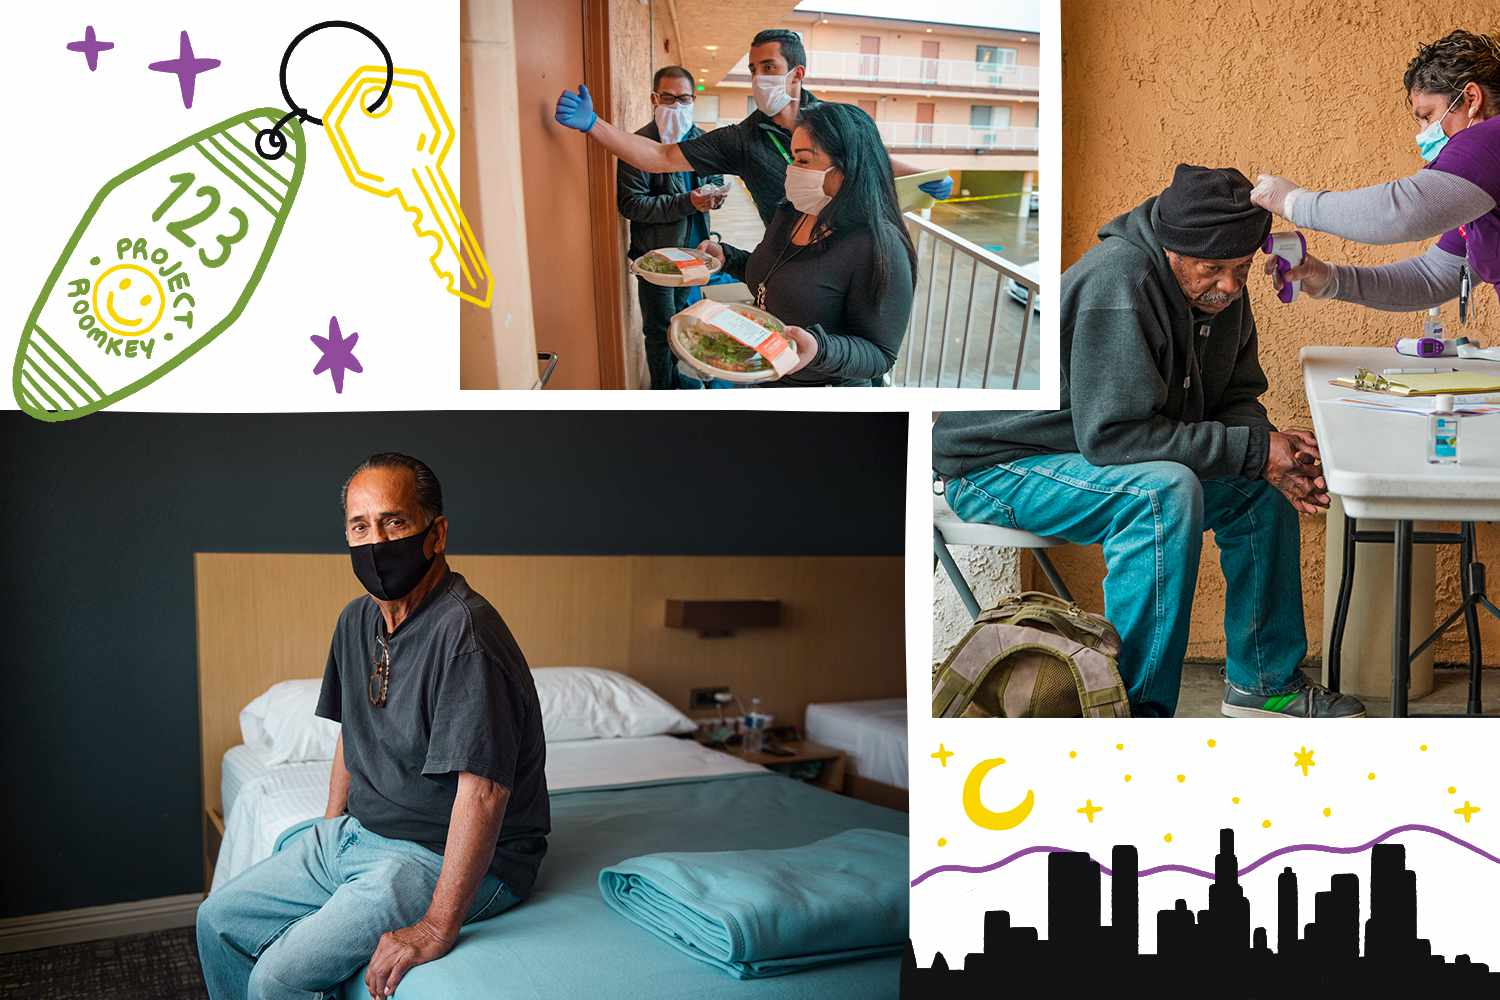 Collage of photos and illustrations of Project Roomkey